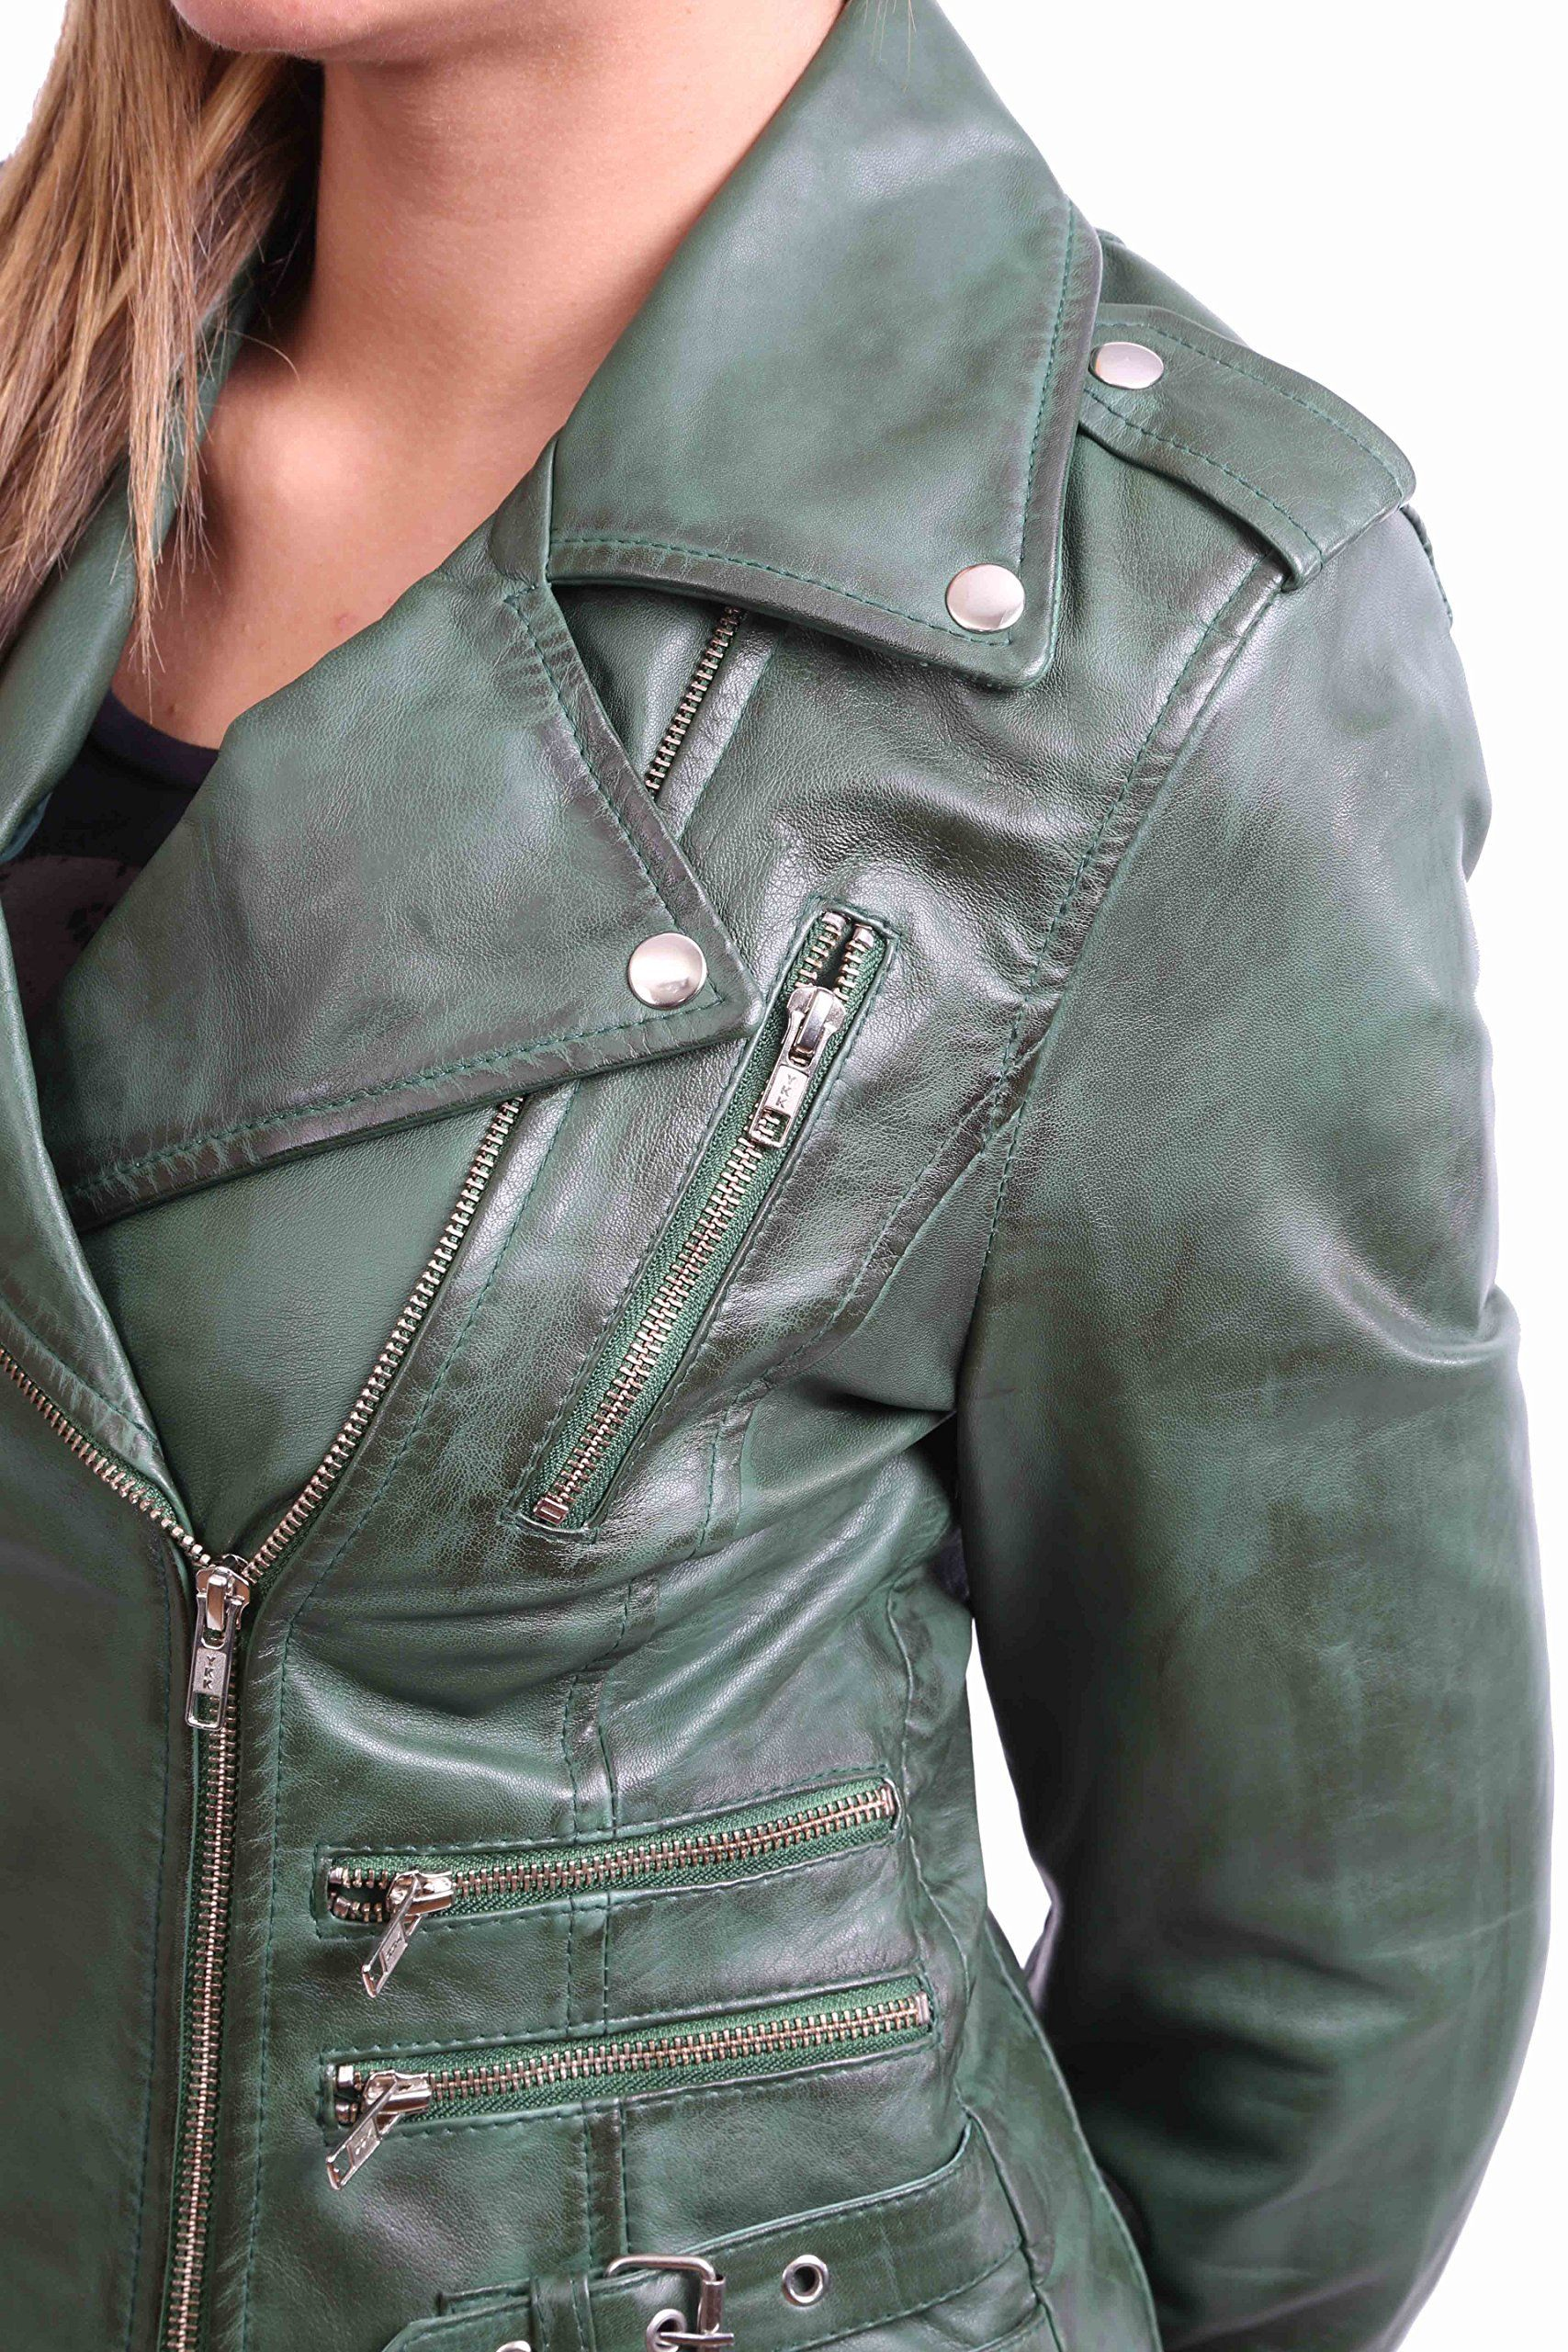 3719d2d69dd7 Womens Real Leather Biker Motorcycle Style Fitted Cross Zip Jacket Cara  Green Medium >>> Want additional info? Click on the image.